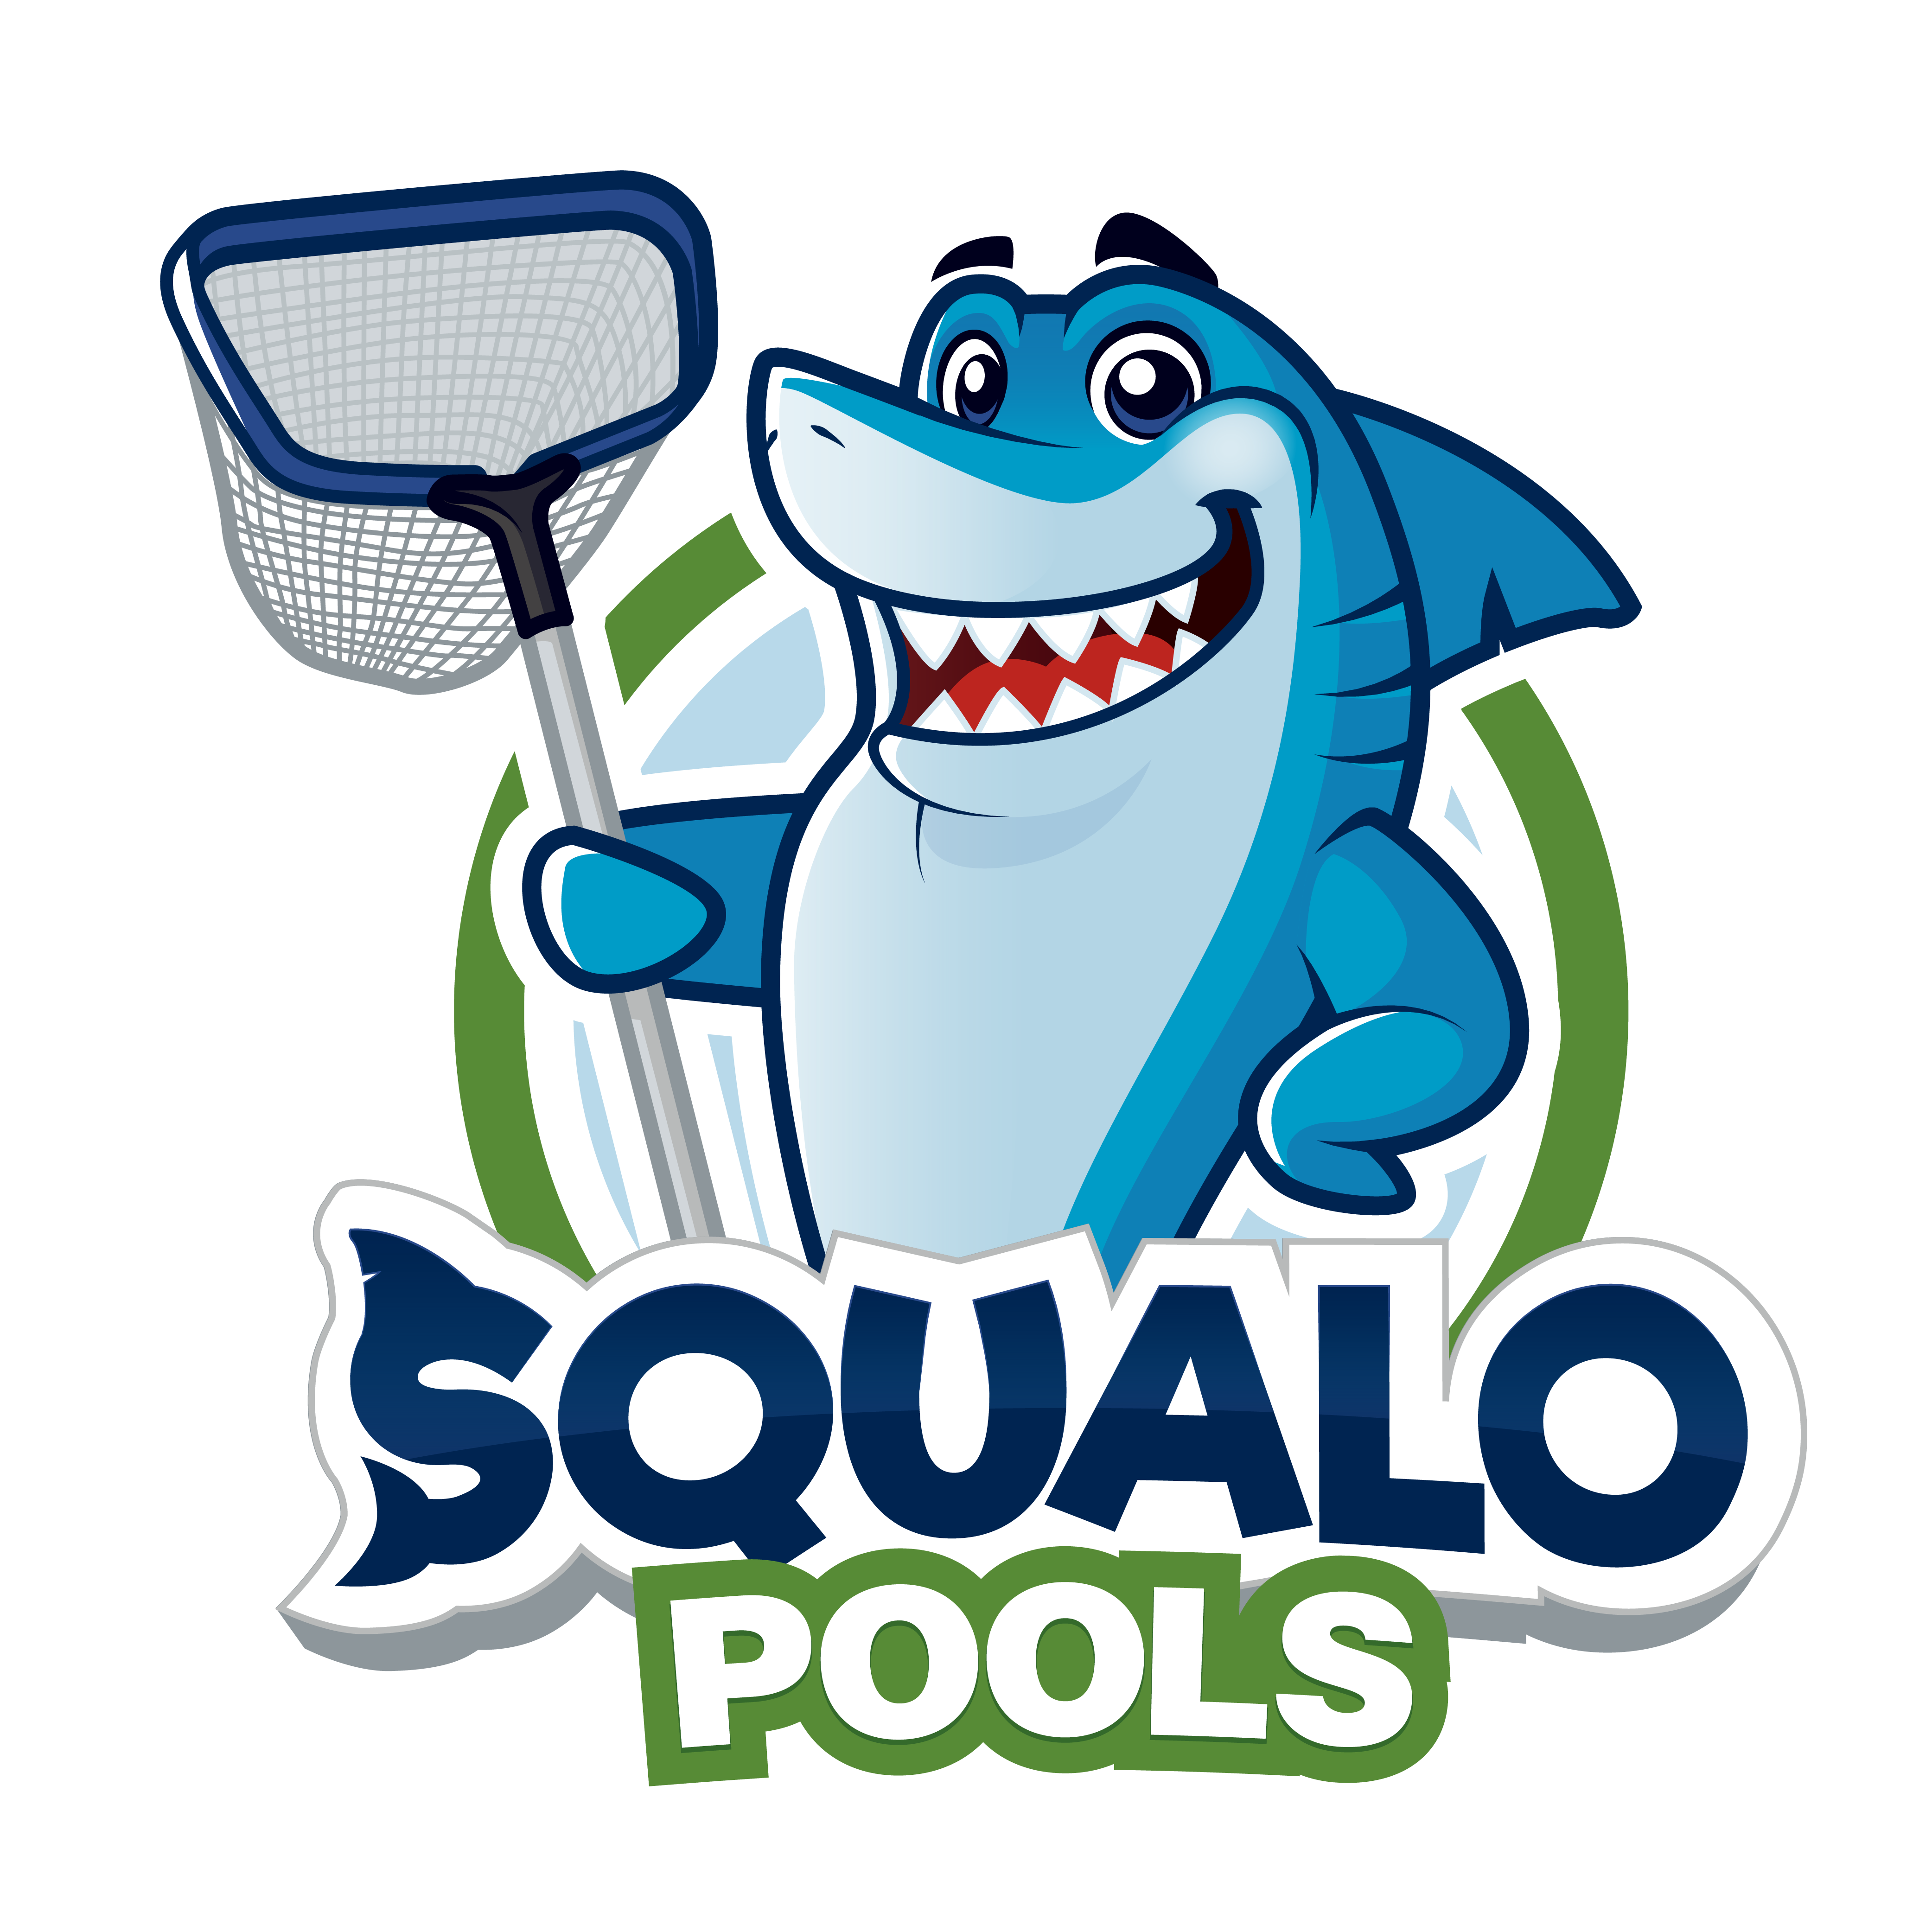 Create a powerful logo for the best pool company in South Florida